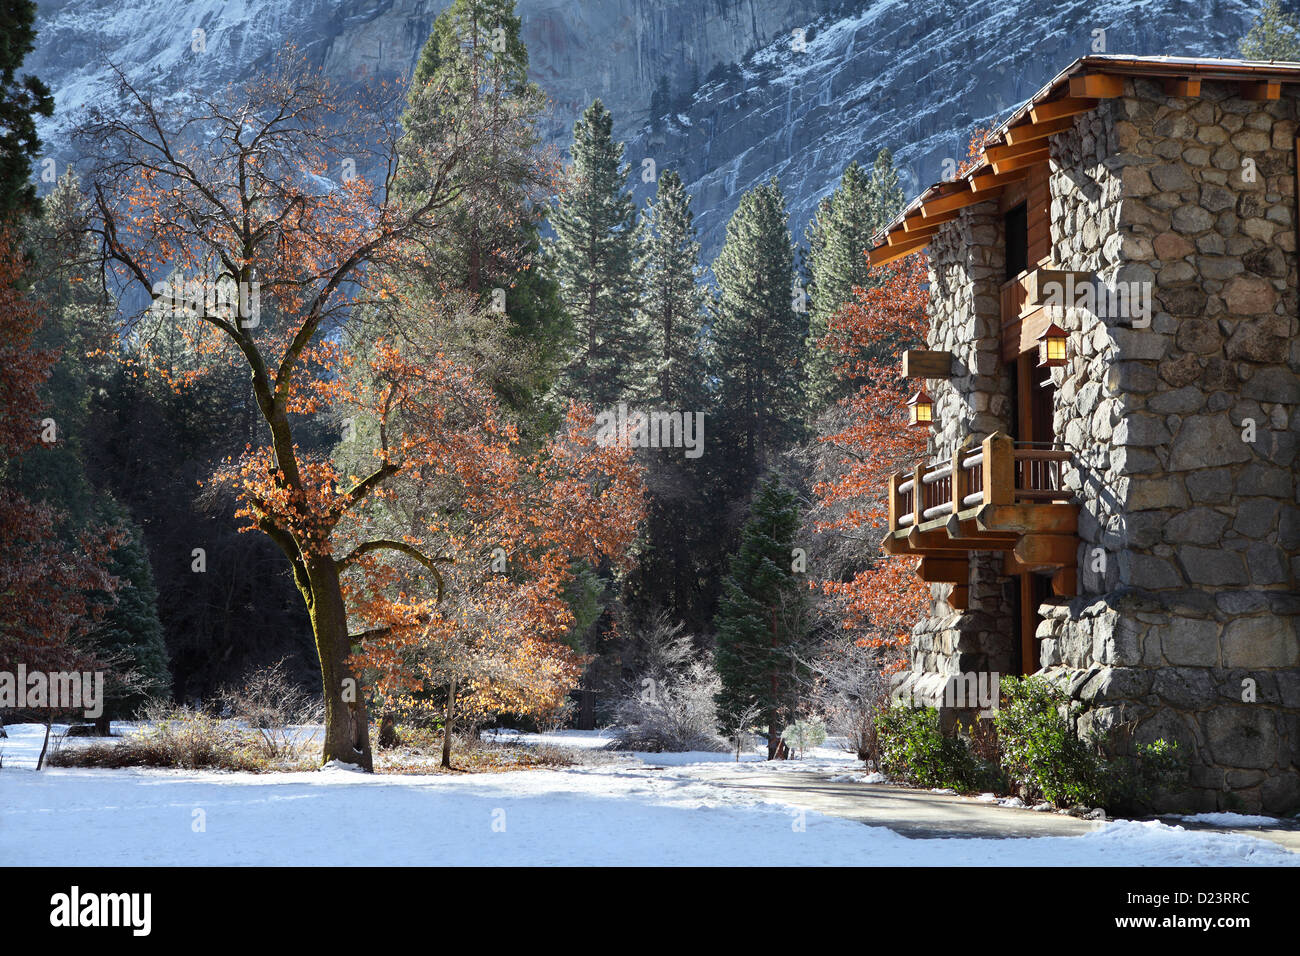 Ahwahnee hotel exterior in Yosemite, California - Stock Image